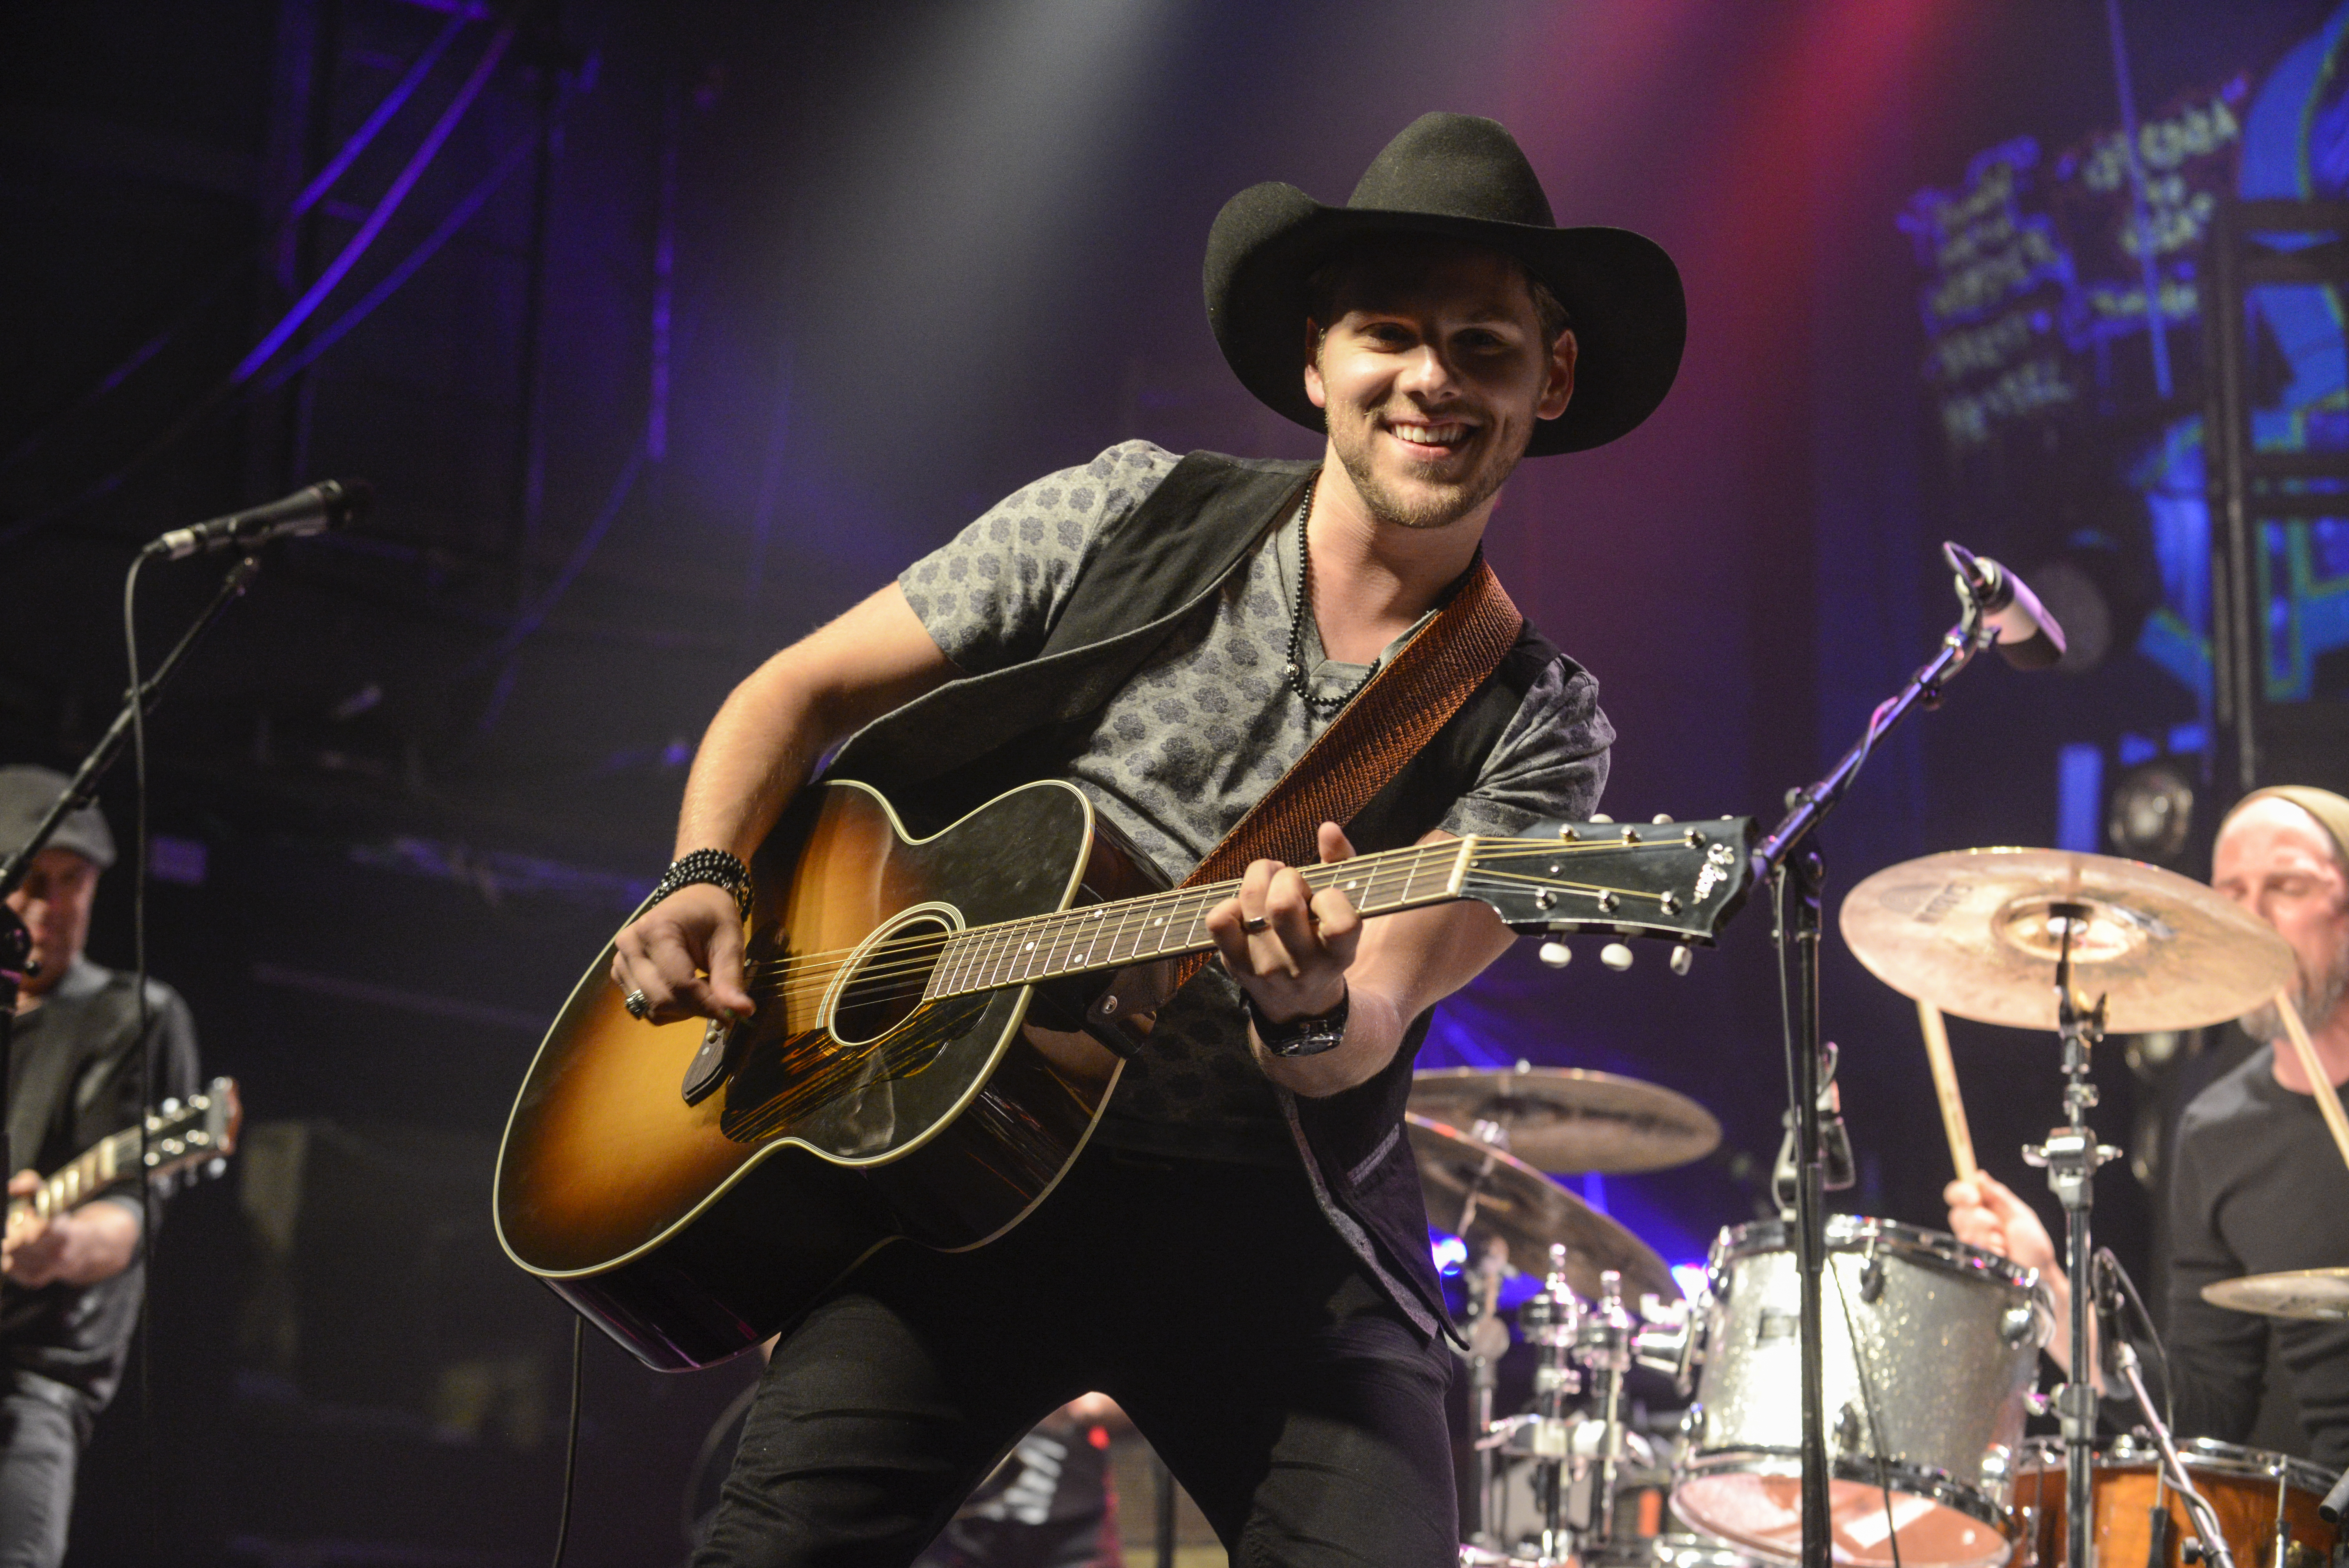 Canadian country star Brett Kissel playing before a crowd of loving fans at the Phoenix Hall in Toronto. Photo by Andrej Ivanov.